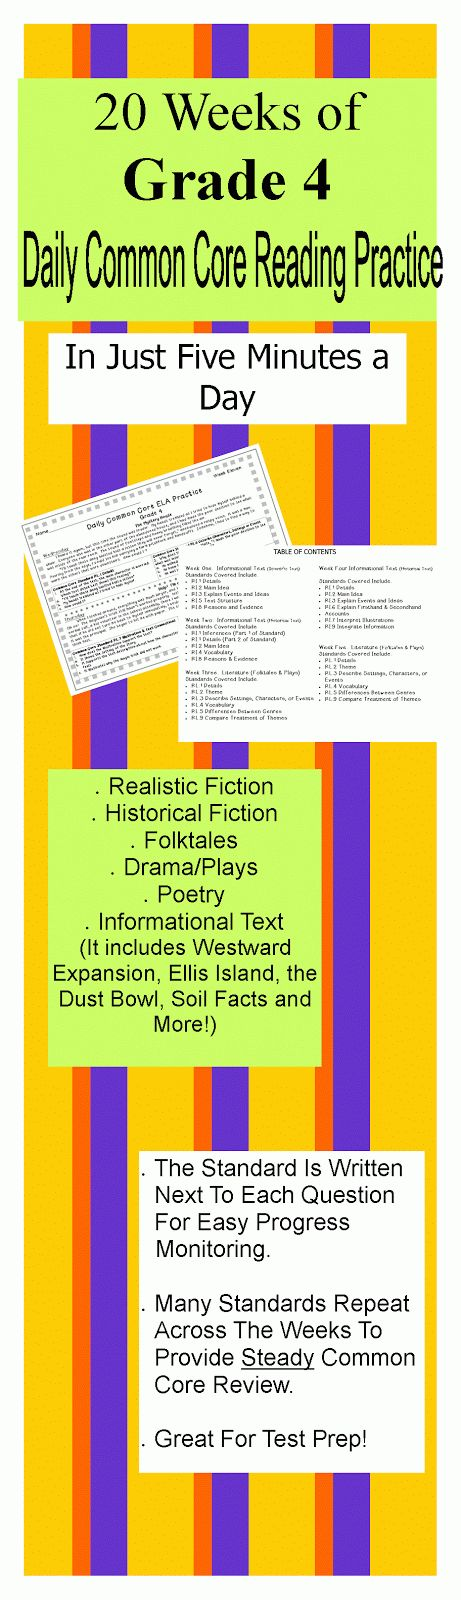 ~20 Weeks of Common Core Reading Practice~ It includes a reading passage for each day of the school week.  Realistic fiction, historical fiction, informational text, poetry, plays, and folktales are included.  Nearly all of the Common Core Literature and Informational Text Standards are included.  Standards repeat across the weeks to provide steady Common Core review.  $